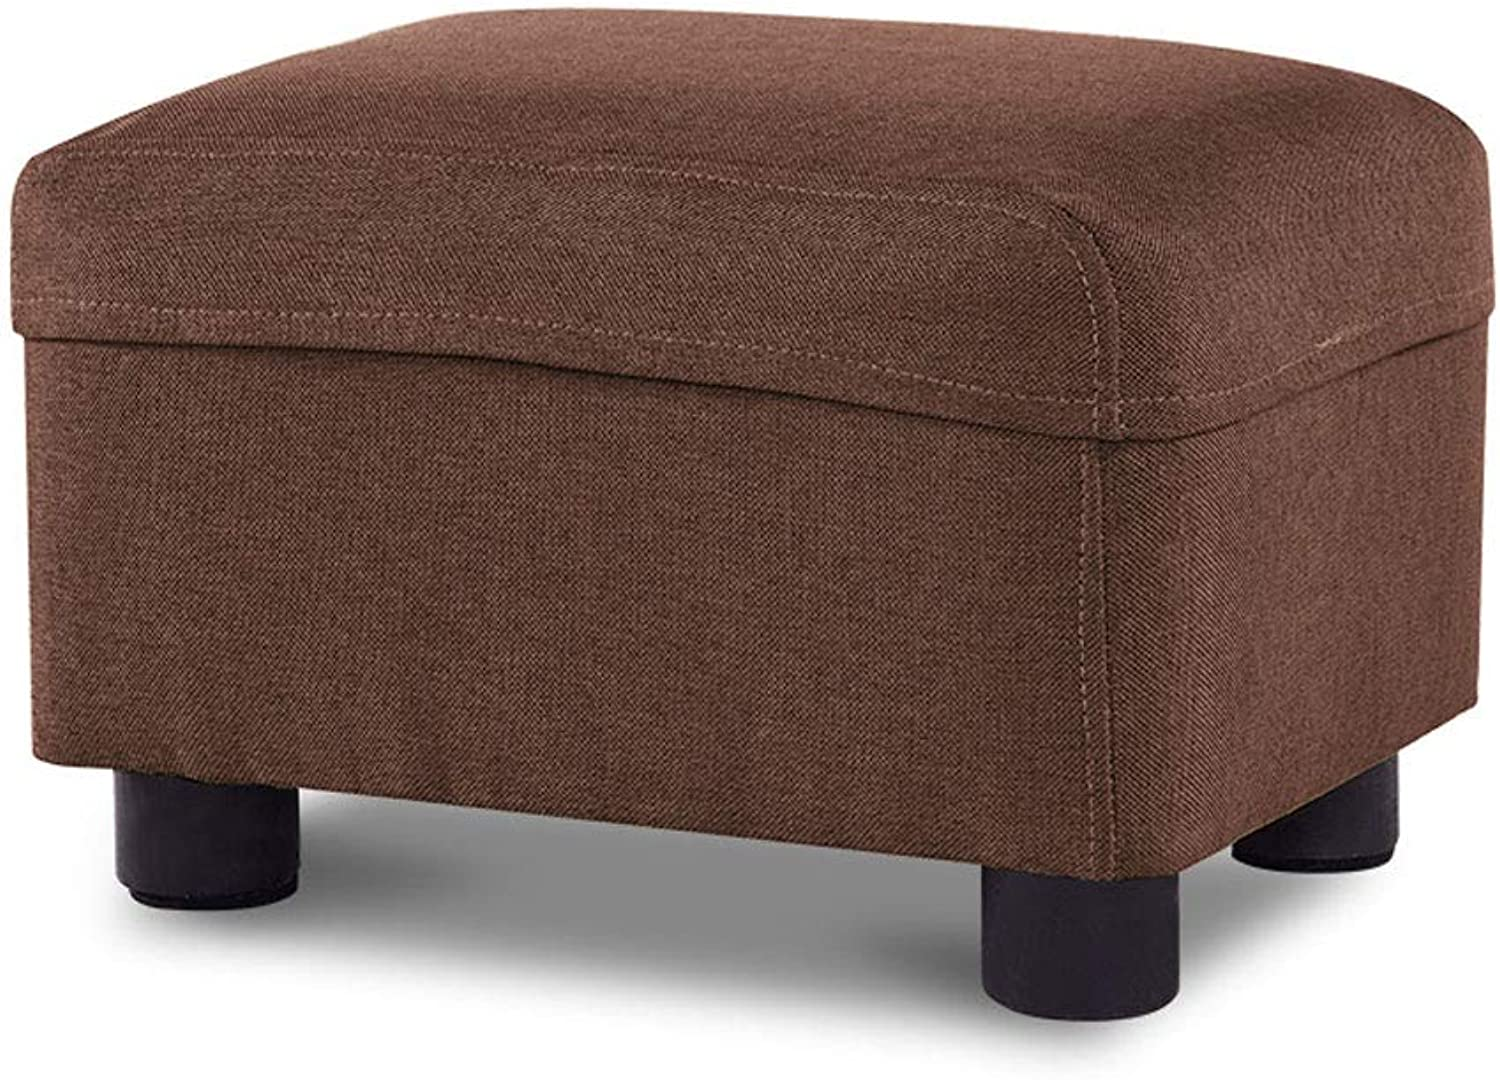 Fabric Stool Home Square Washable Multi-Function Solid color Small Bench V (color   Brown, Size   L37CMXW27CMXH24CM)